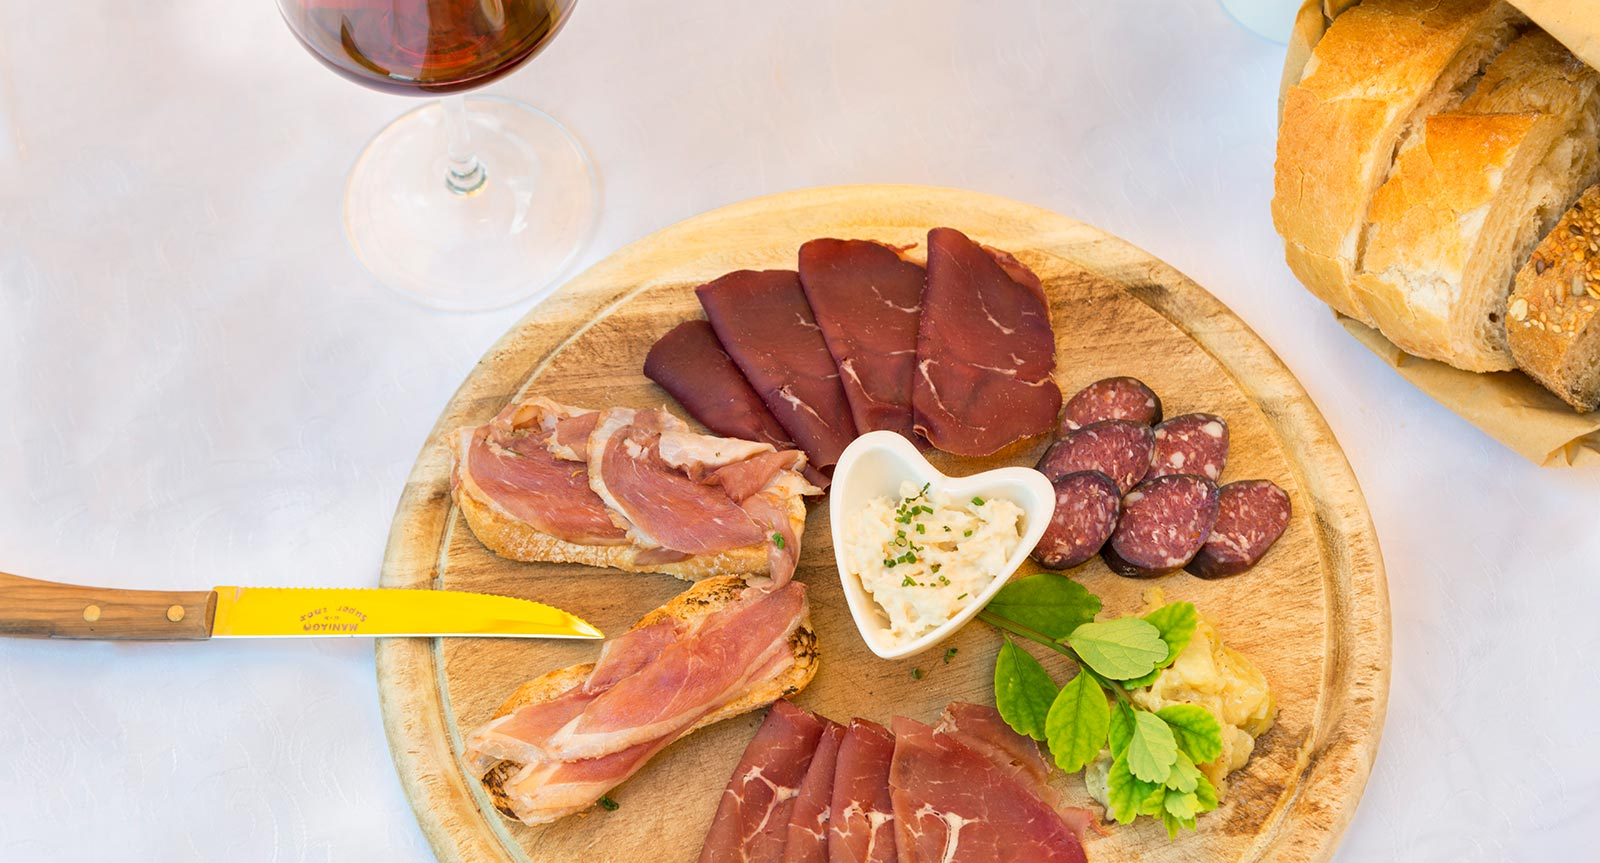 a cutting board with various meat slices and spread-cream